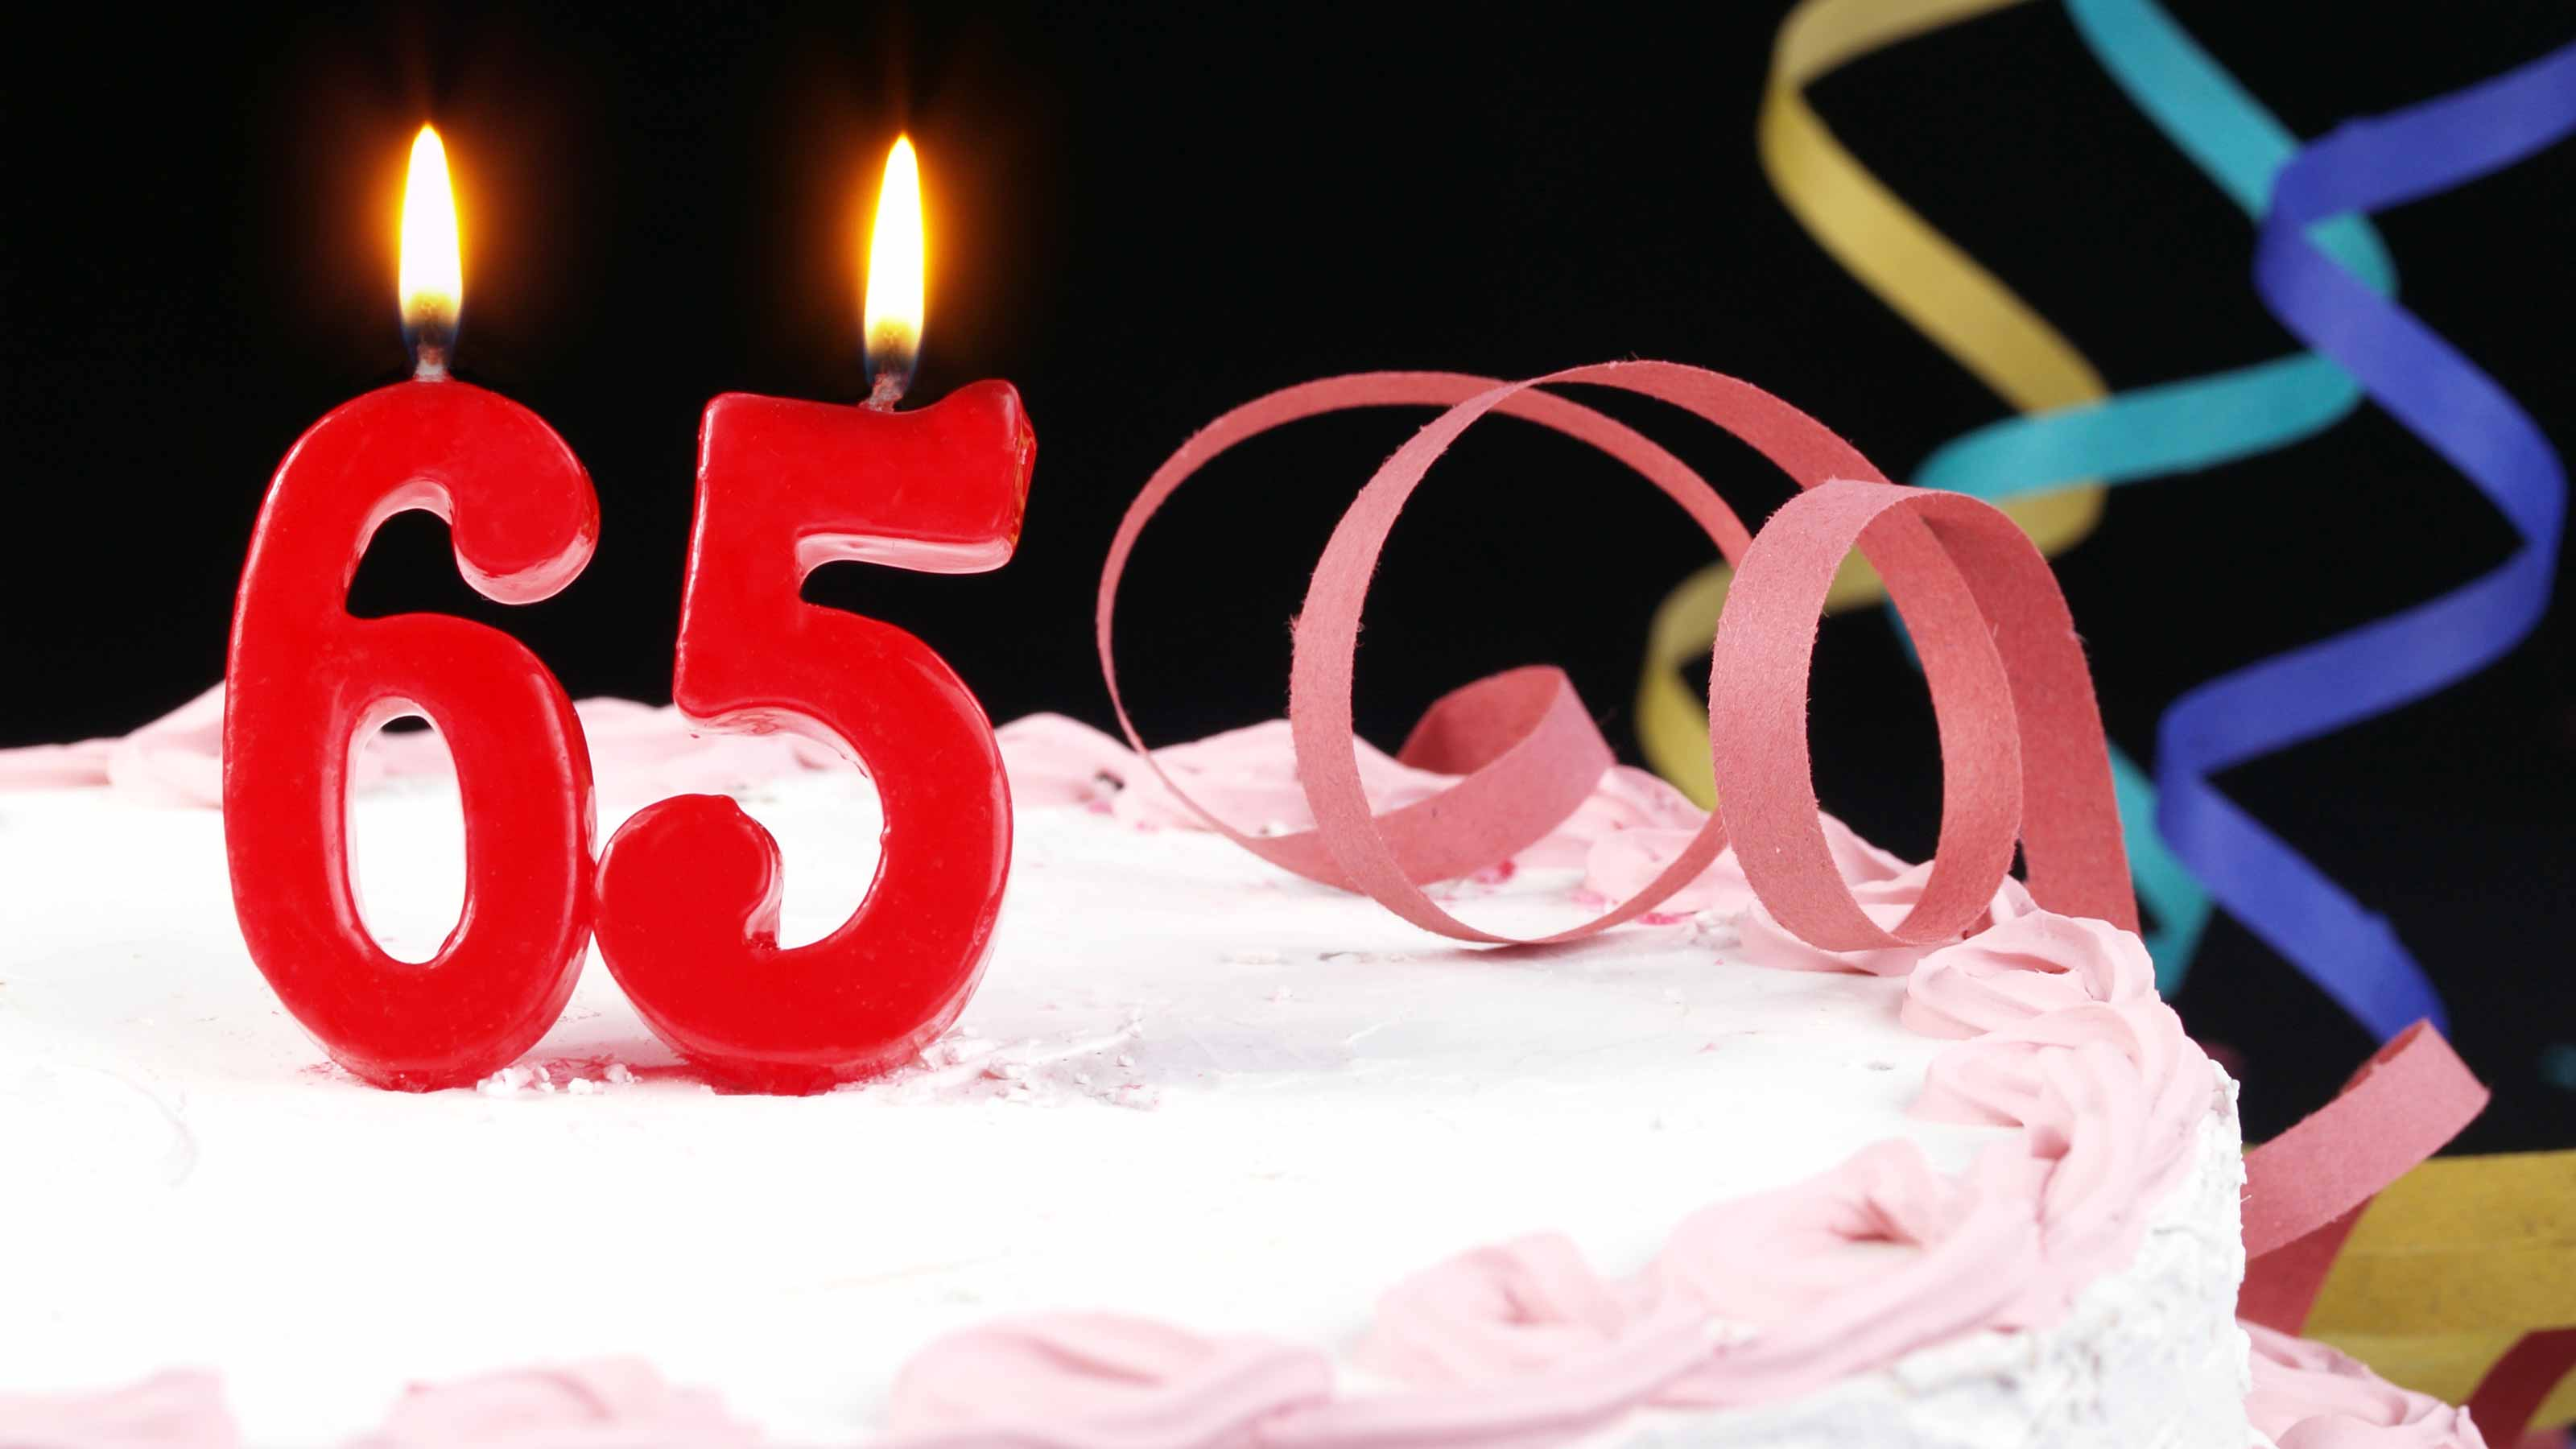 Birthday cake with candles showing the number 65.